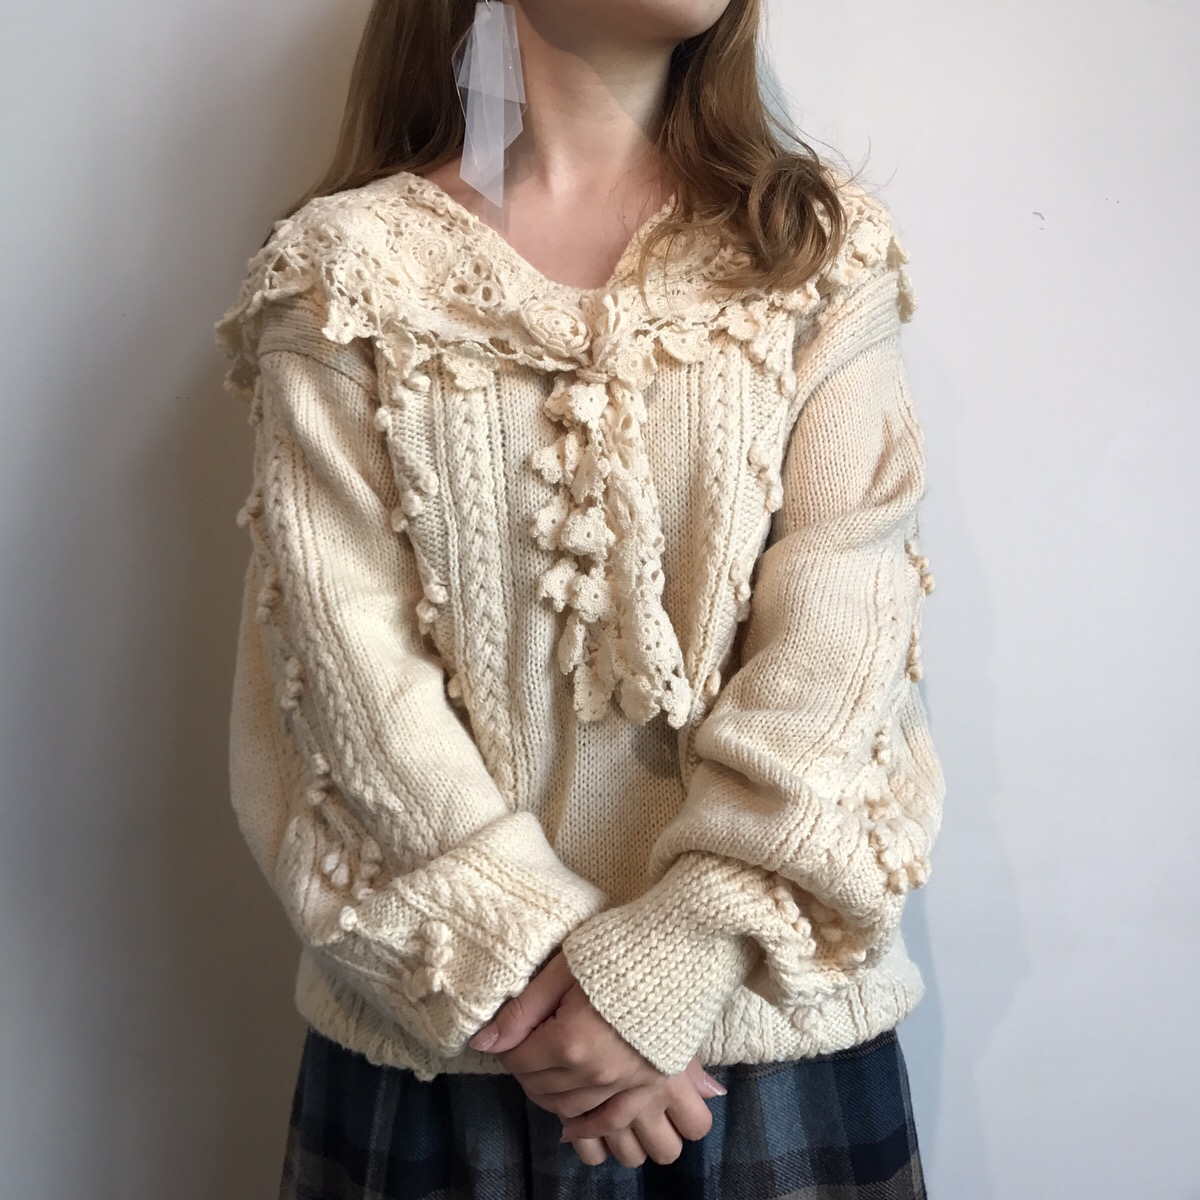 wool sweater knited by hand